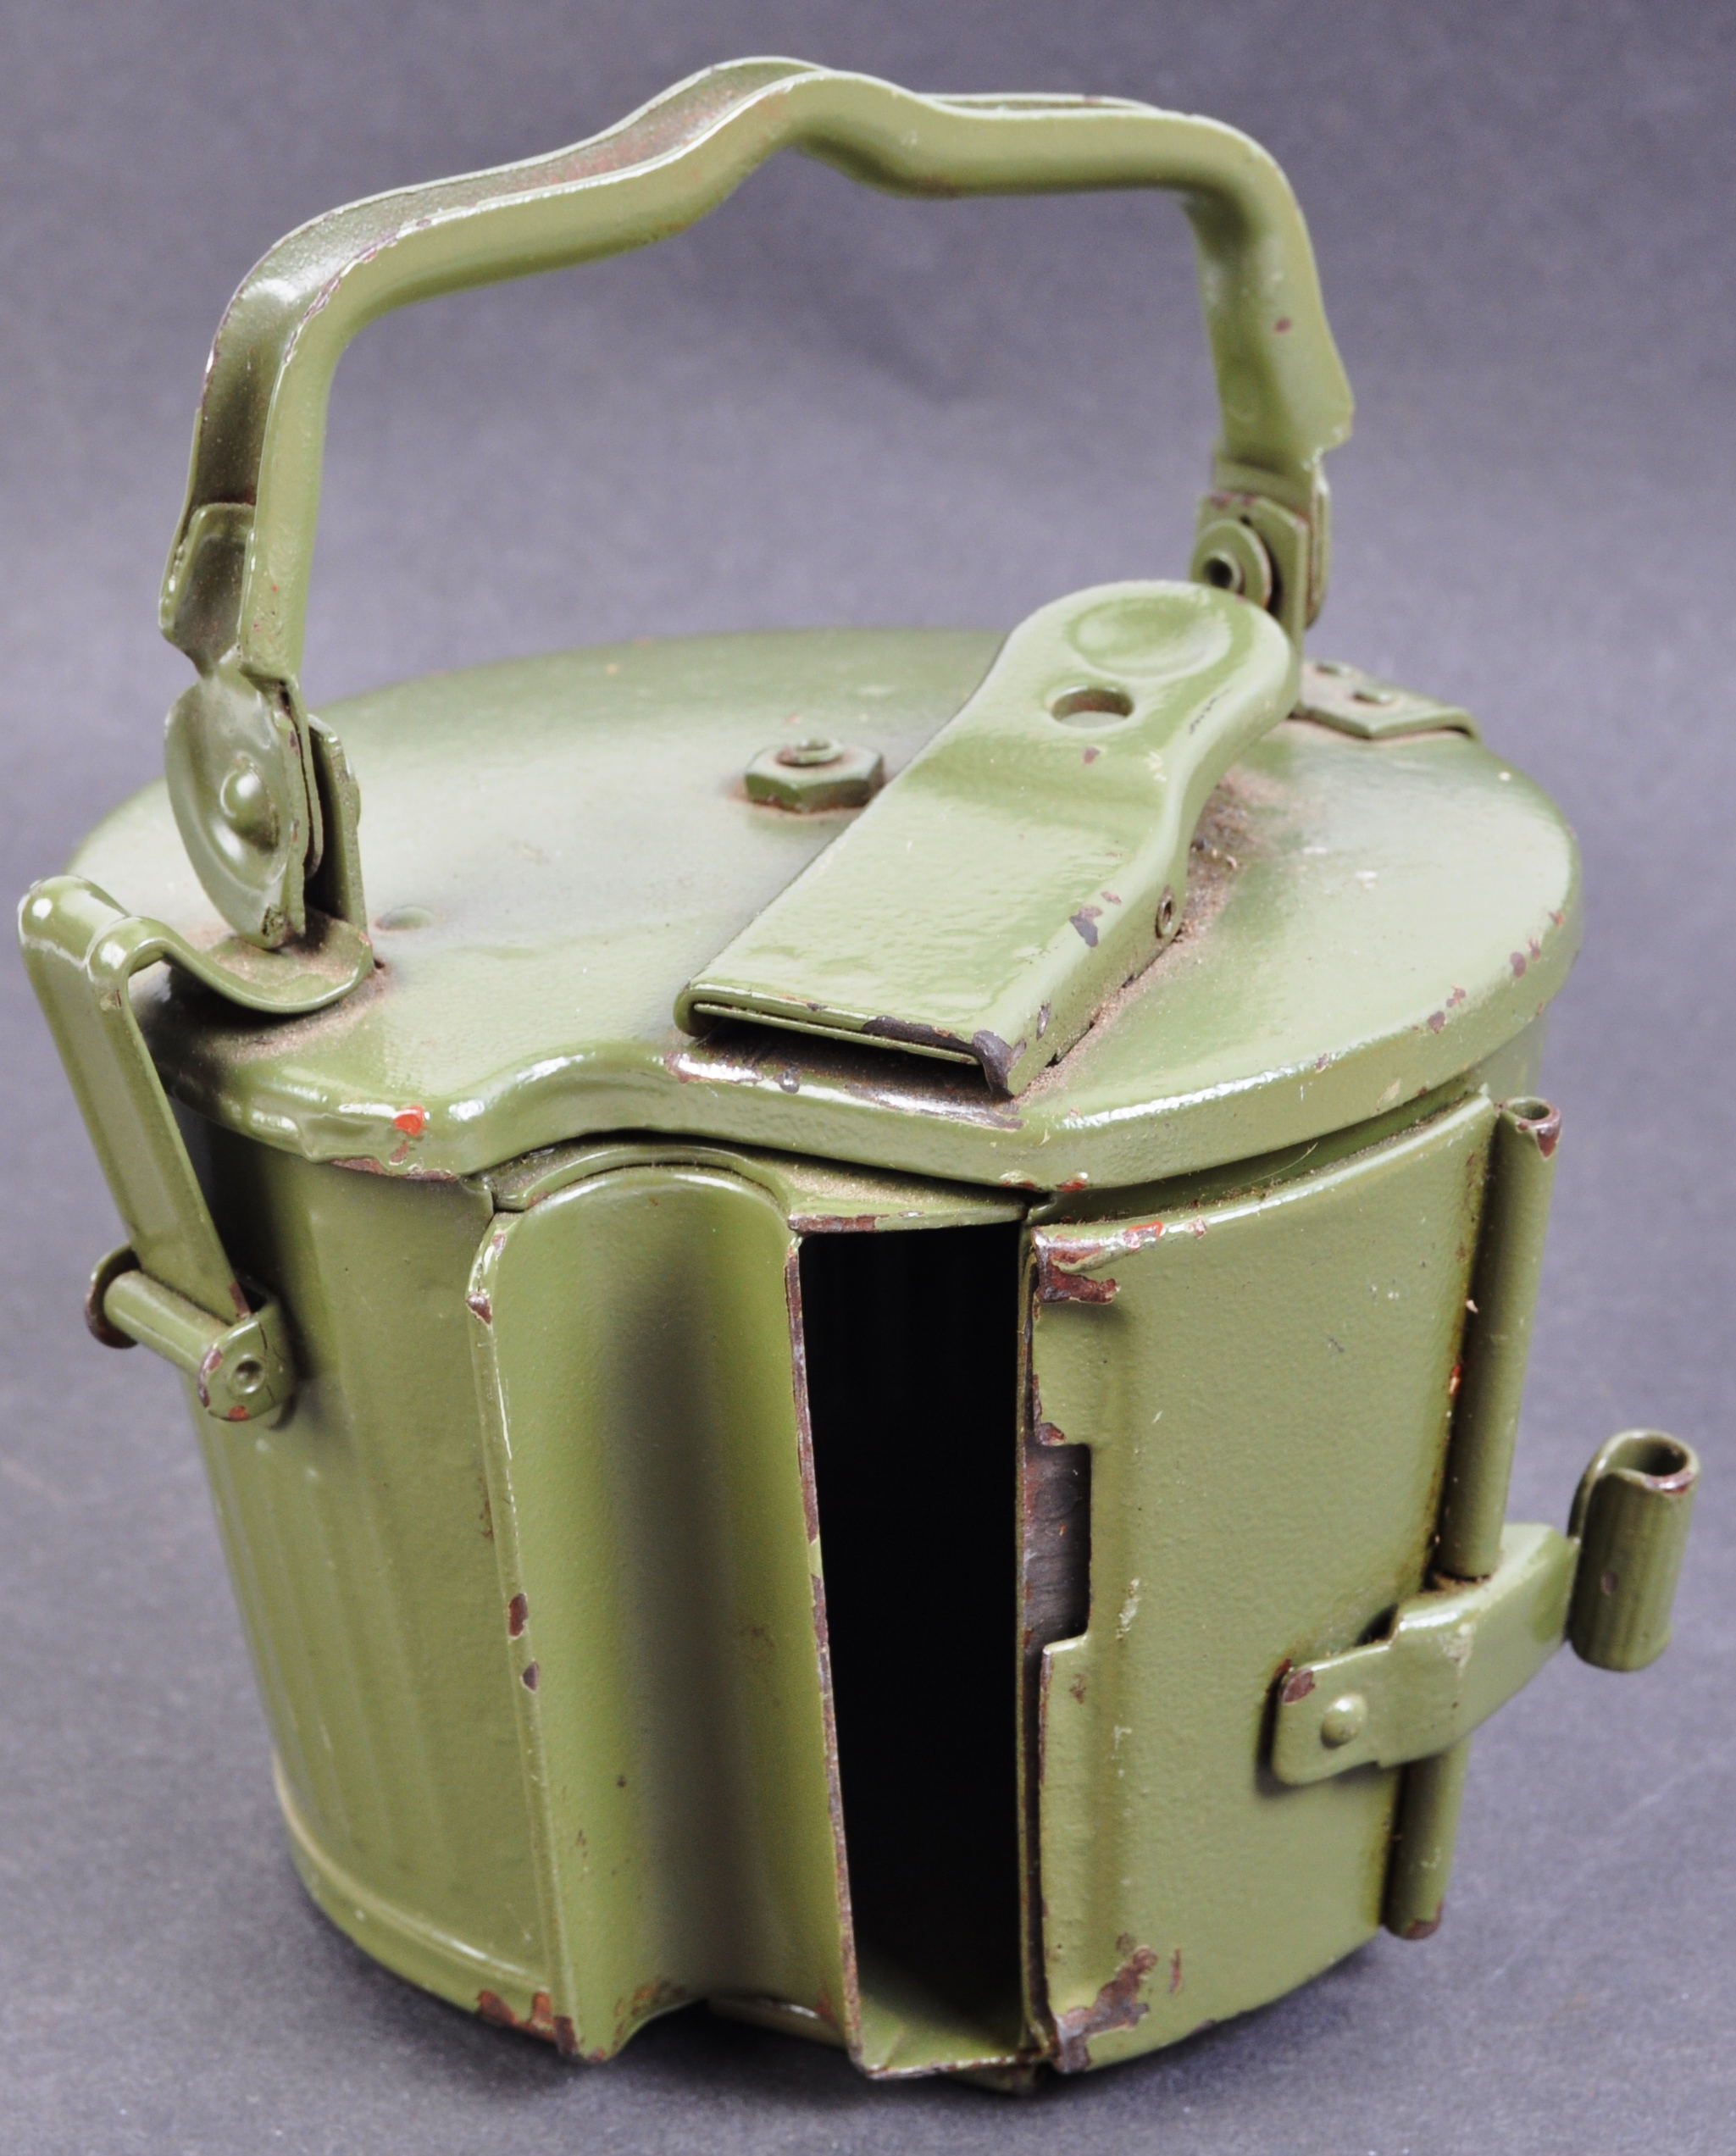 TWO WWII SECOND WORLD WAR TYPE GERMAN REPLICA ITEMS - Image 5 of 9